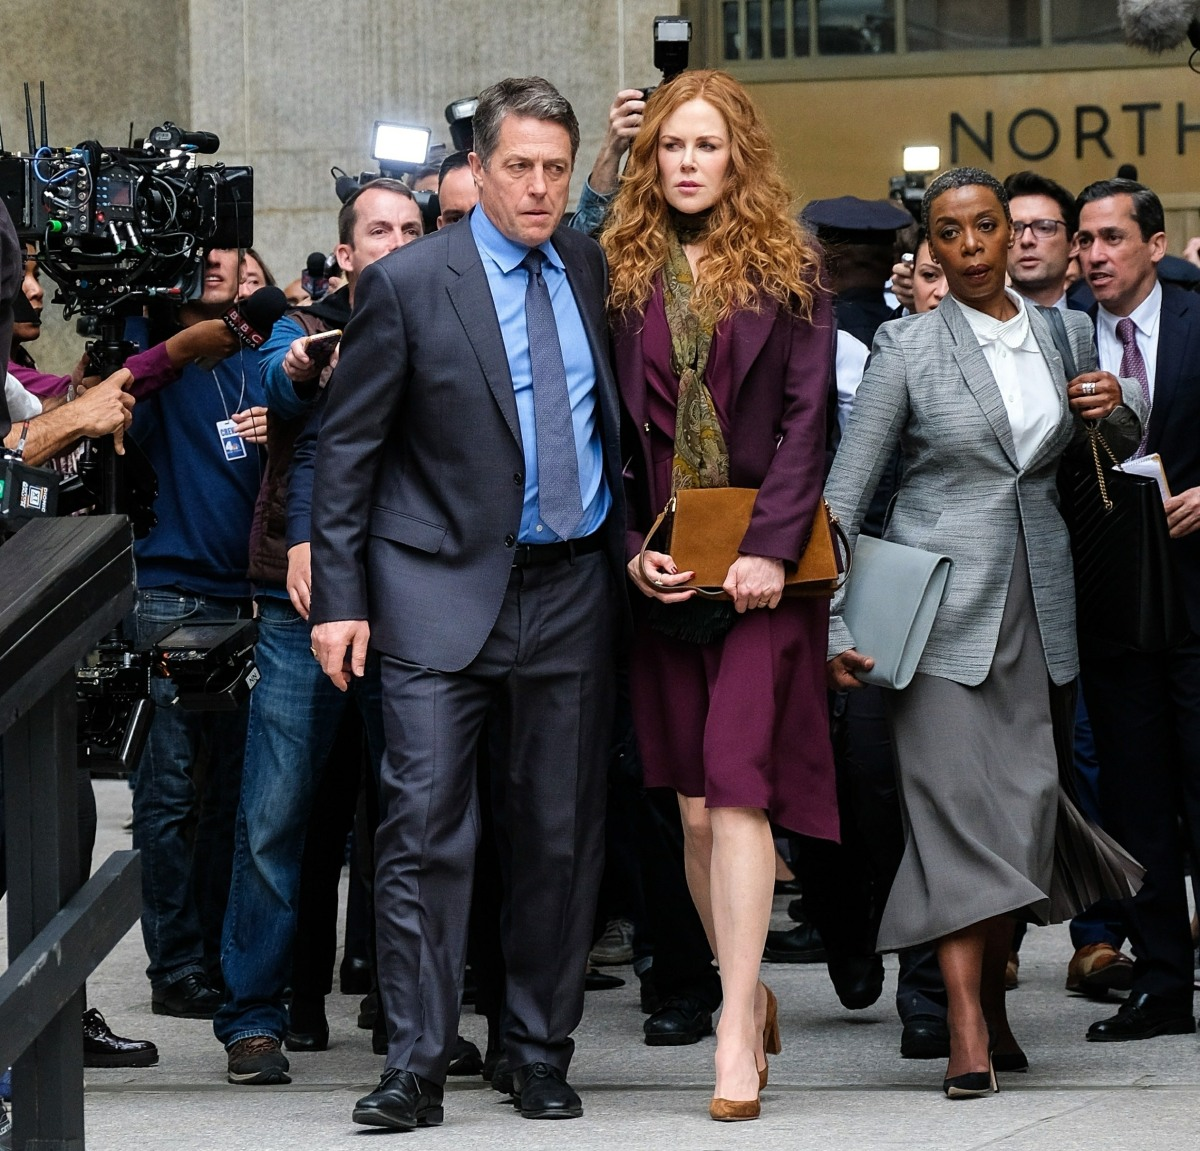 Nicole Kidman films with Hugh Grant and Donald Sutherland in NYC